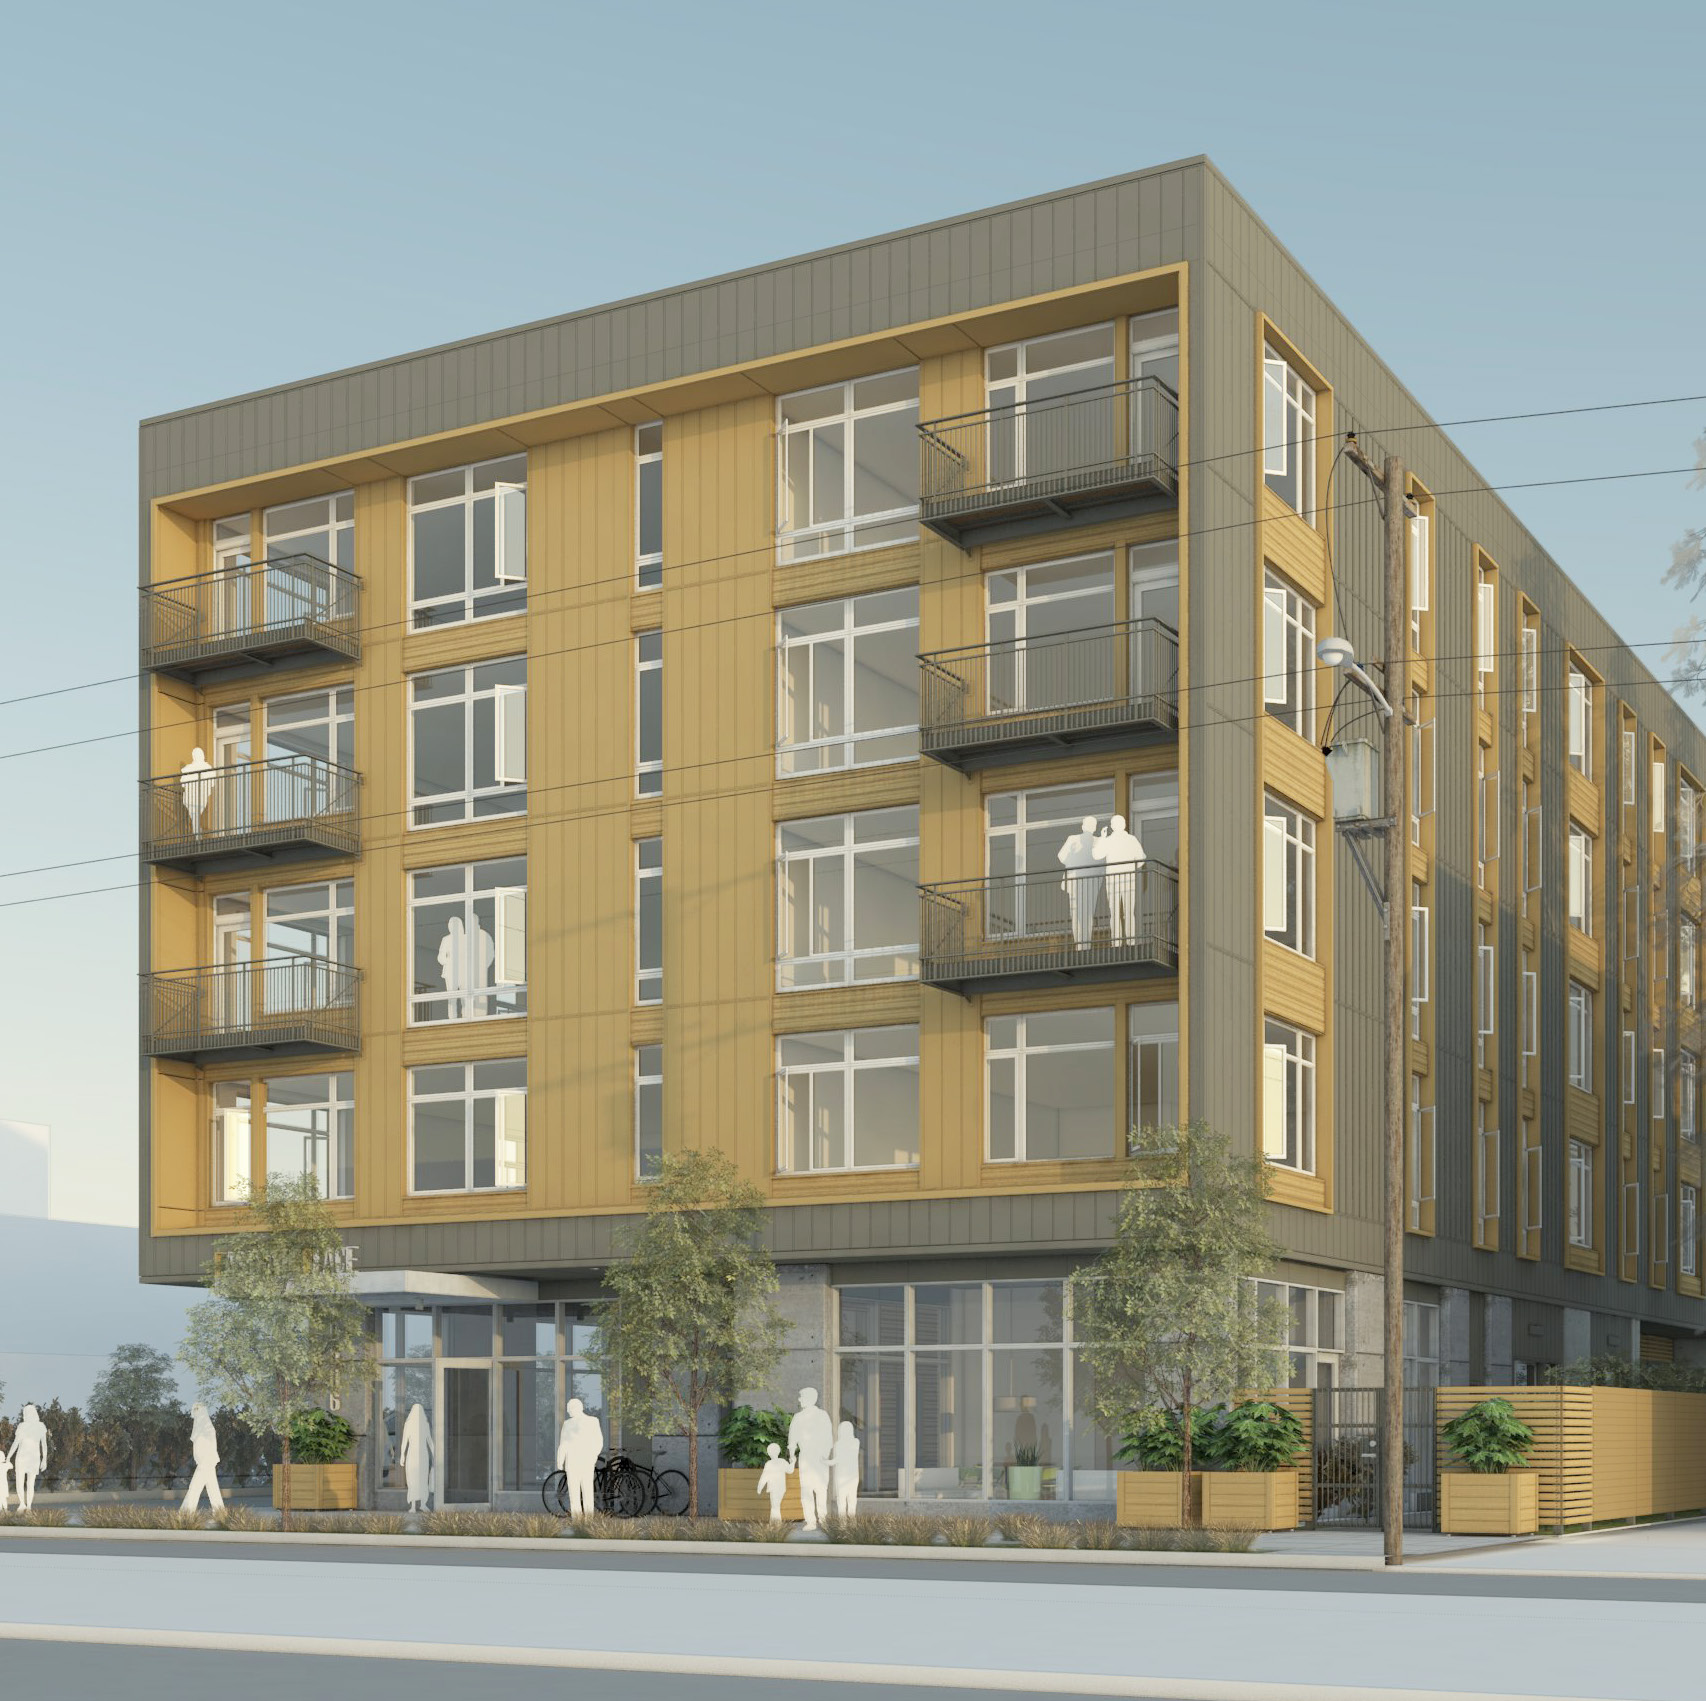 Gateway Place Apartments: Apartments On Outer East Burnside Approved By Design